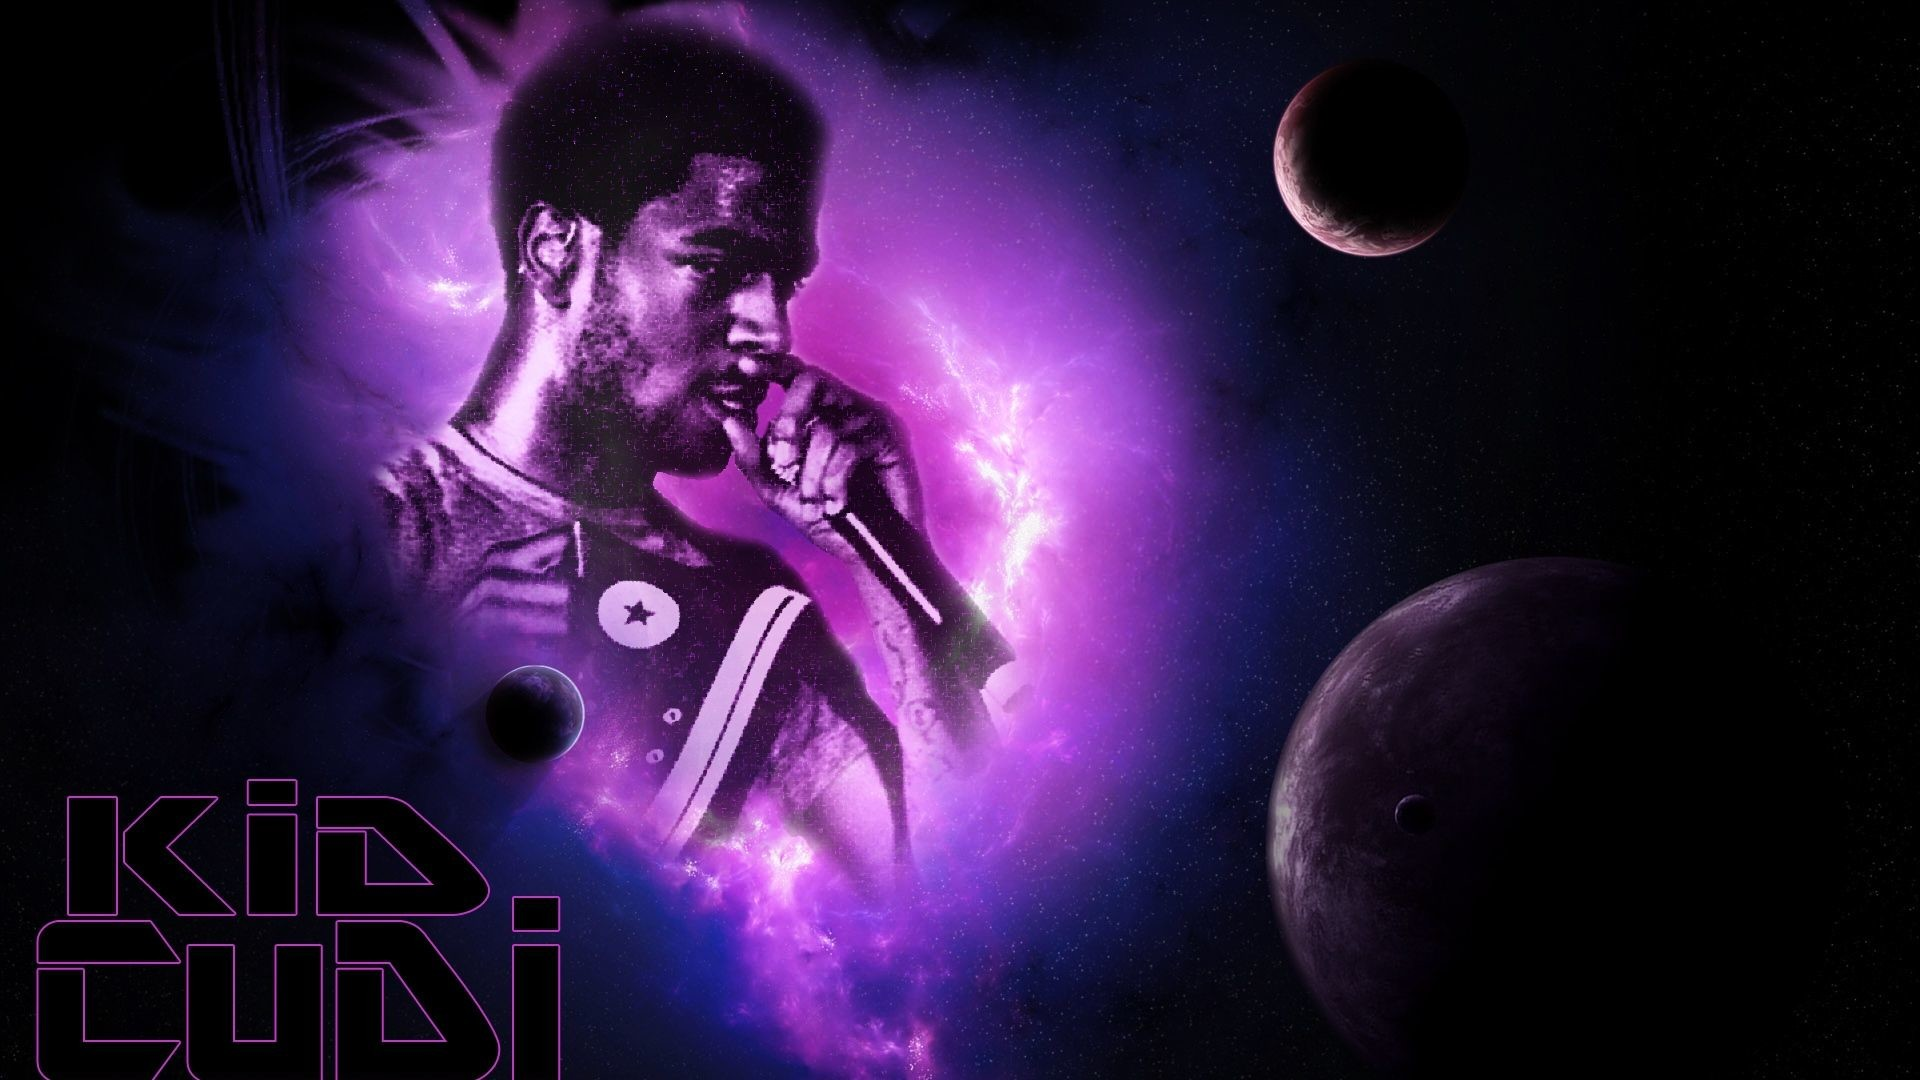 1920x1080 Kid Cudi Wallpapers Images Photos Pictures Backgrounds 1920×1080 Kid Cudi Wallpaper (36